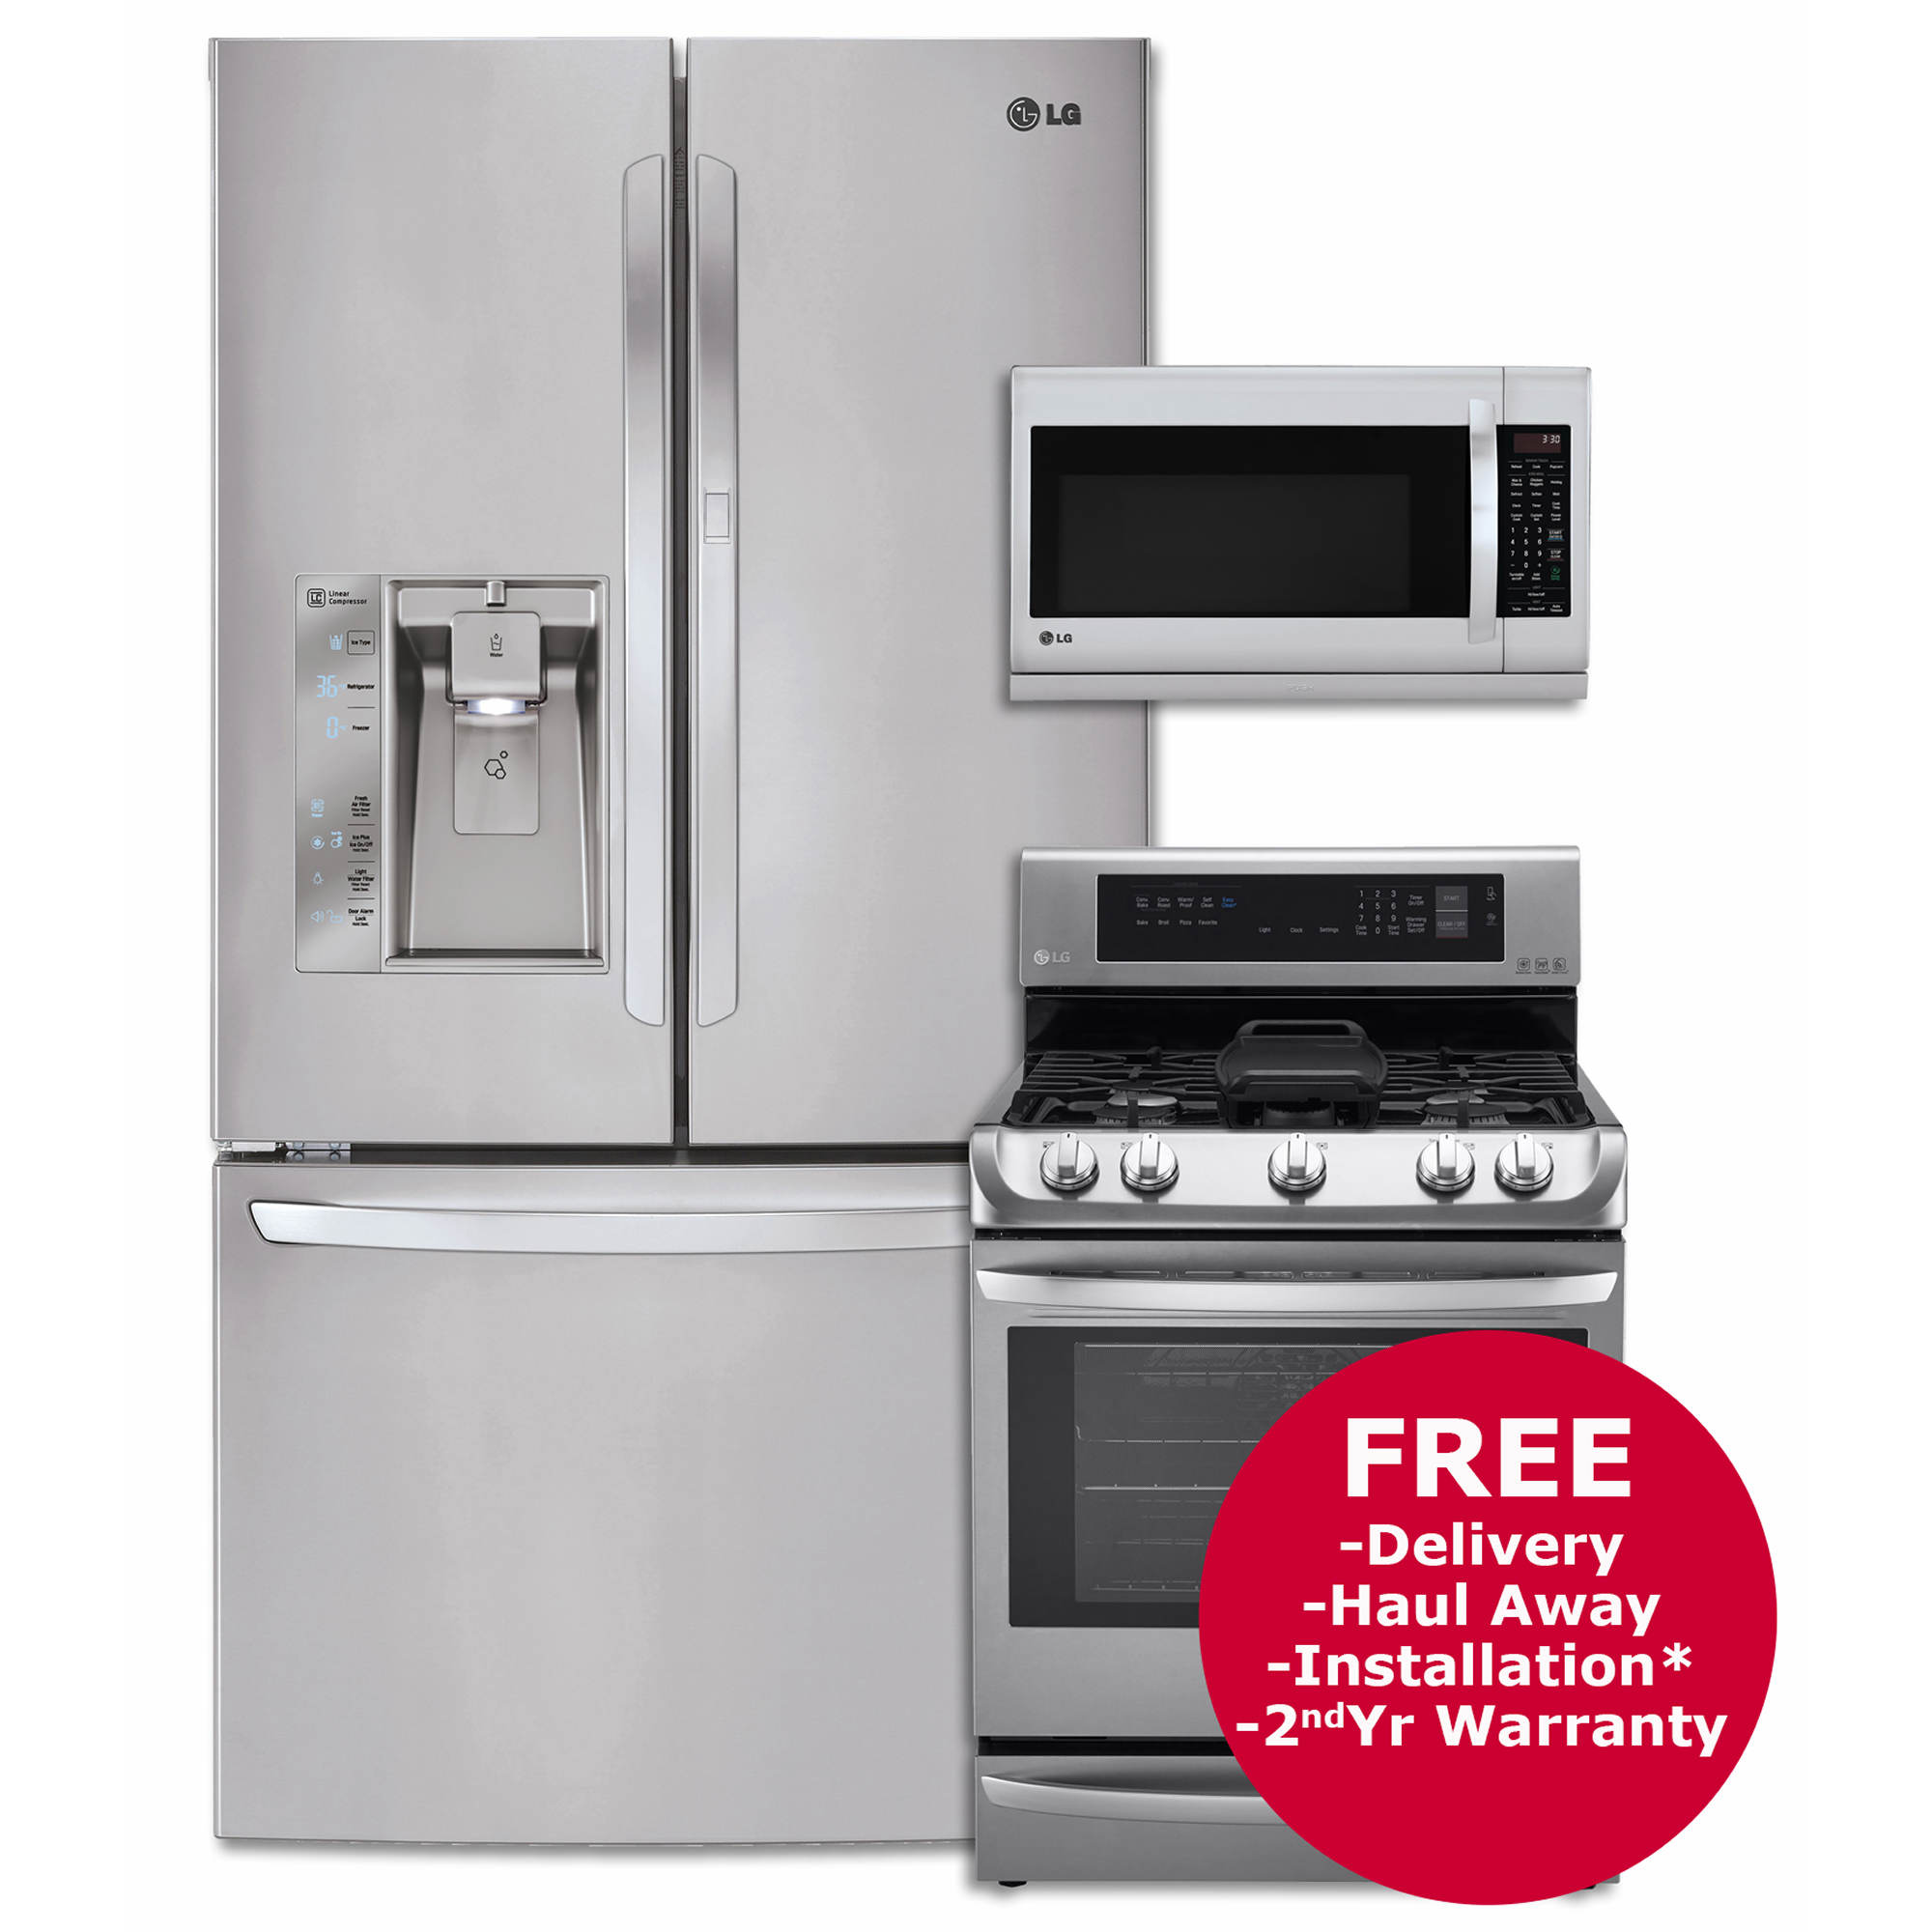 Lg 3 door french door refrigerator single oven gas range and over the range microwave - Red over the range microwave ...